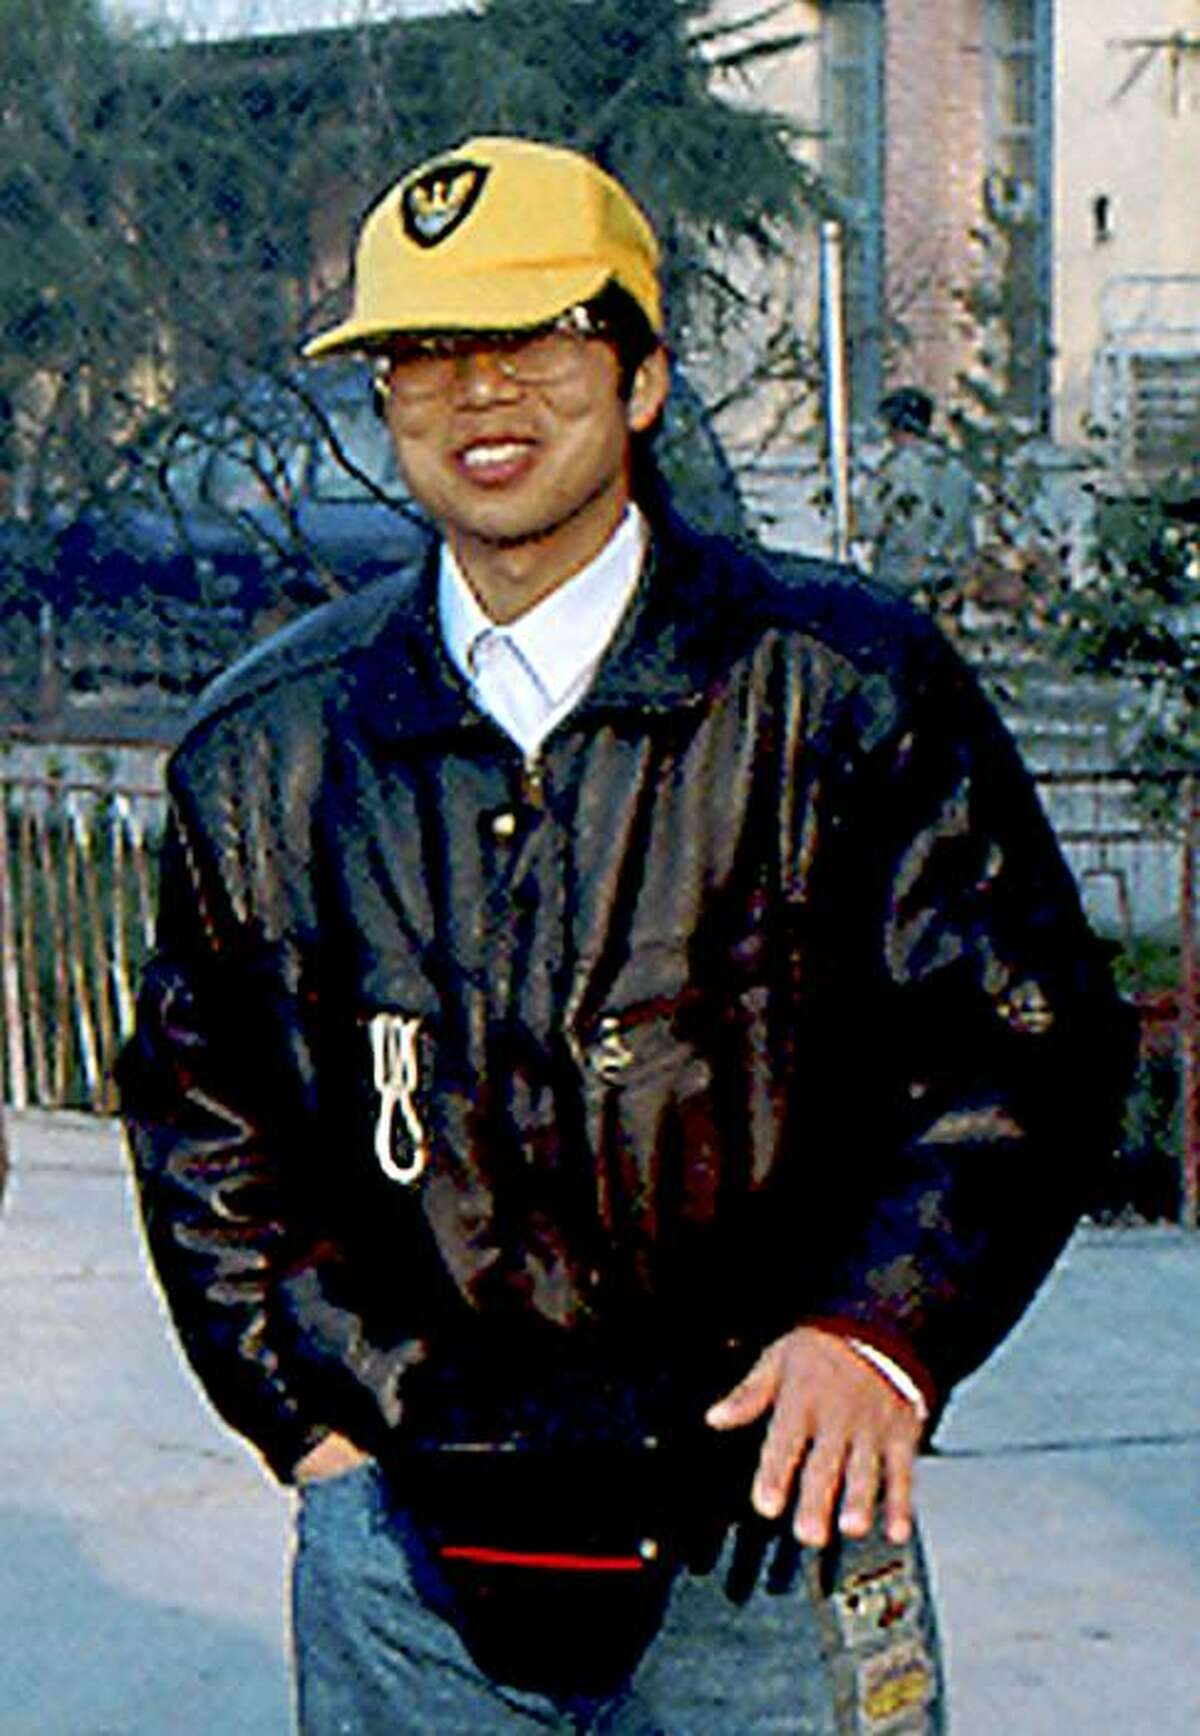 In this photo released by David Rowley, taken Dec. 7, 1993 and made available Thursday, Nov 19, 2009, Feng Xue poses for photos in Yuexi, Anhui Province. Xue was been detained for two years by Chinese police on state secrets charges over the purchase of a commercial database on the oil industry. (AP Photo/David Rowley)